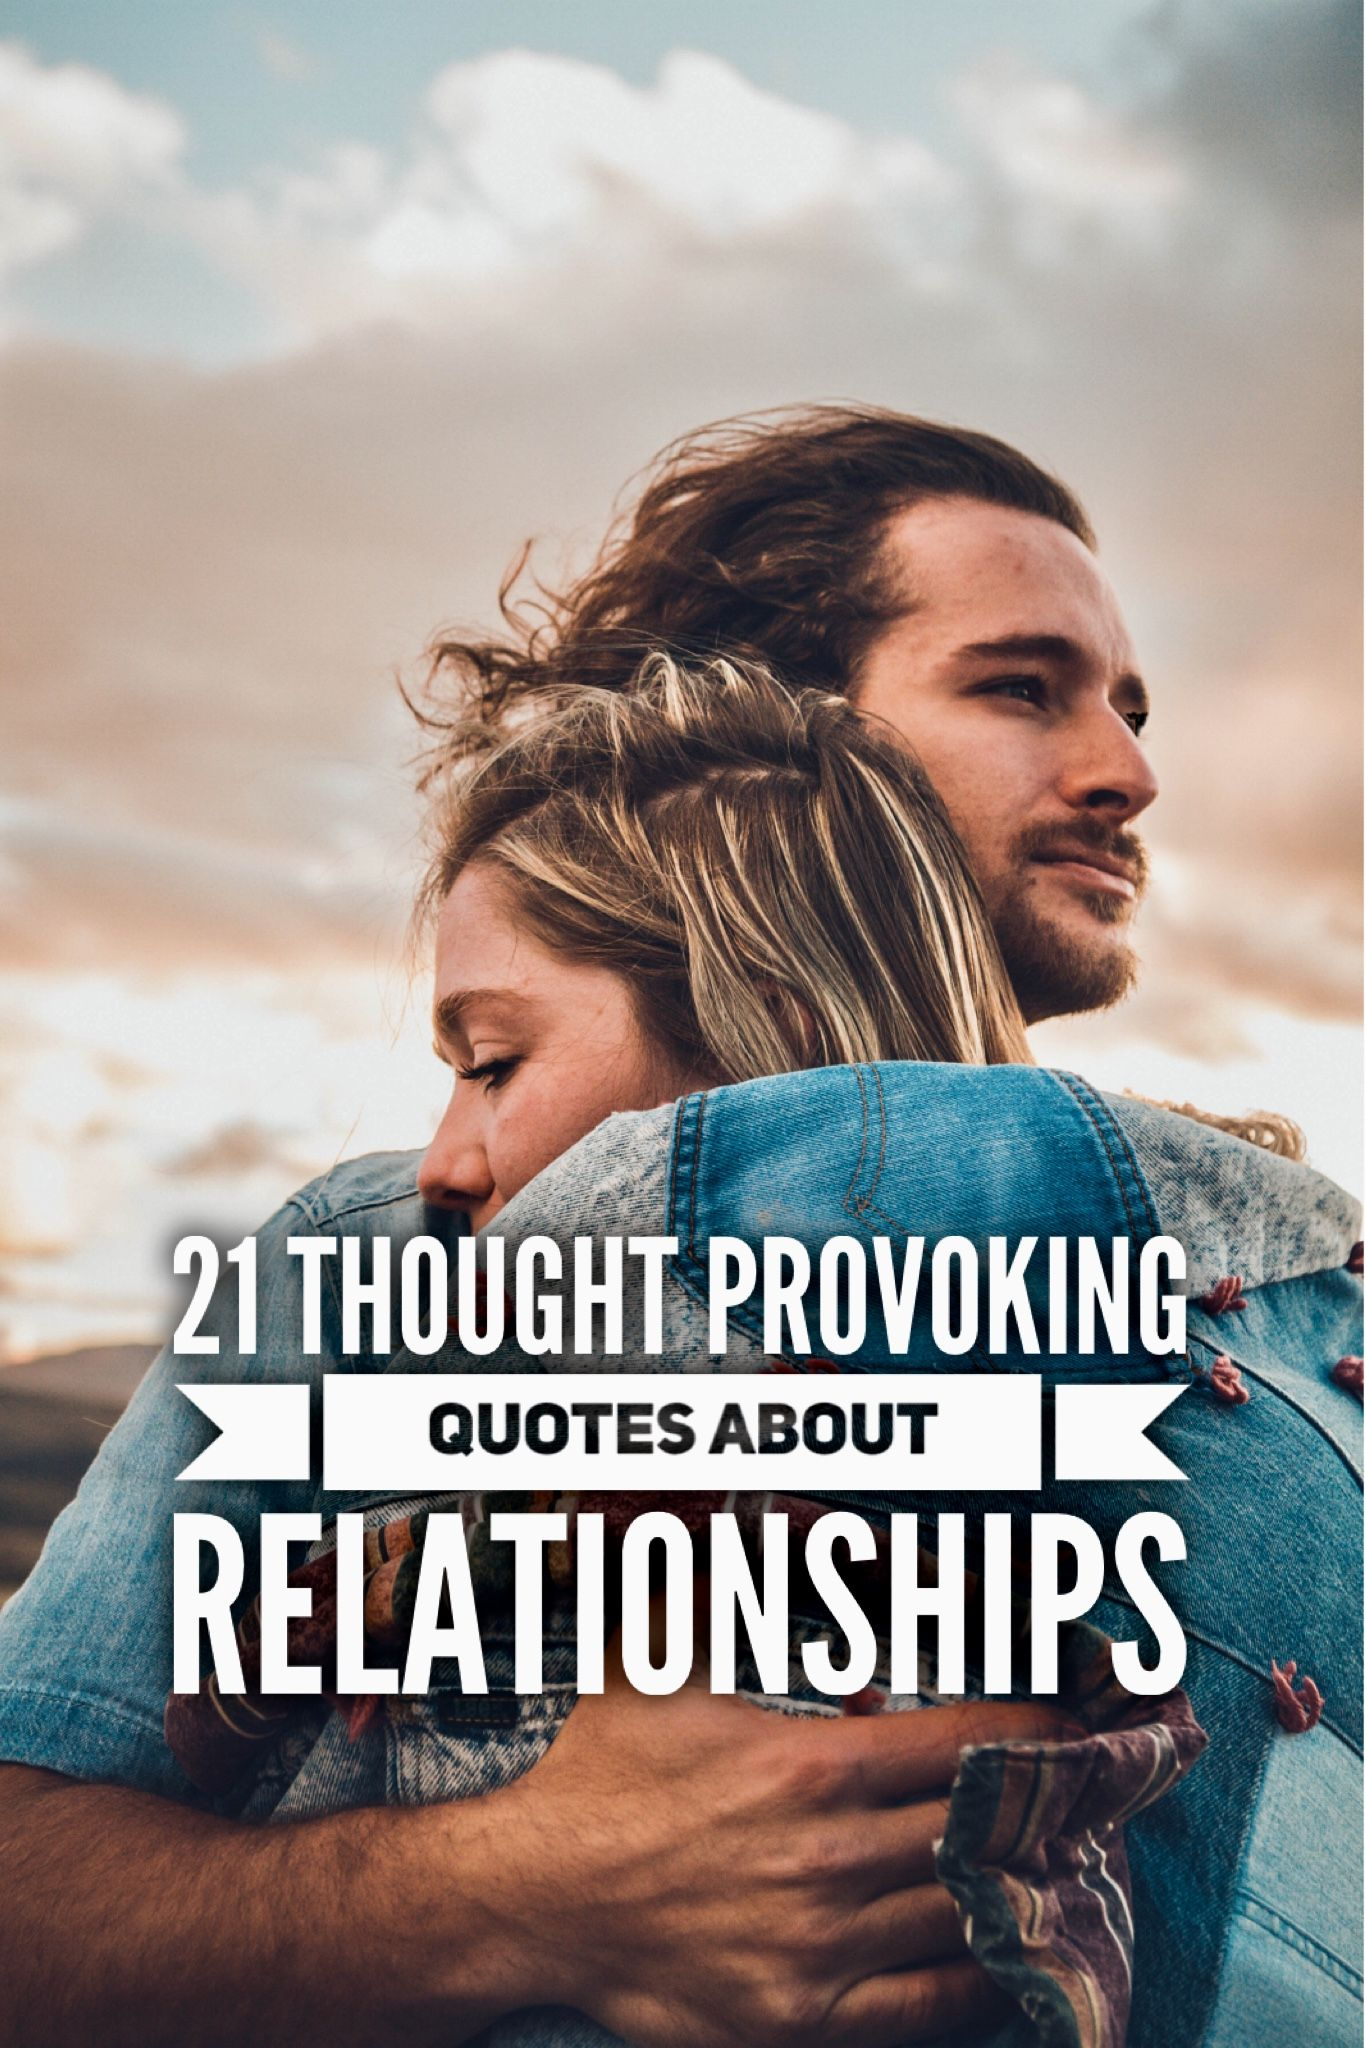 21 Thought Provoking Quotes About Relationships Inspirational